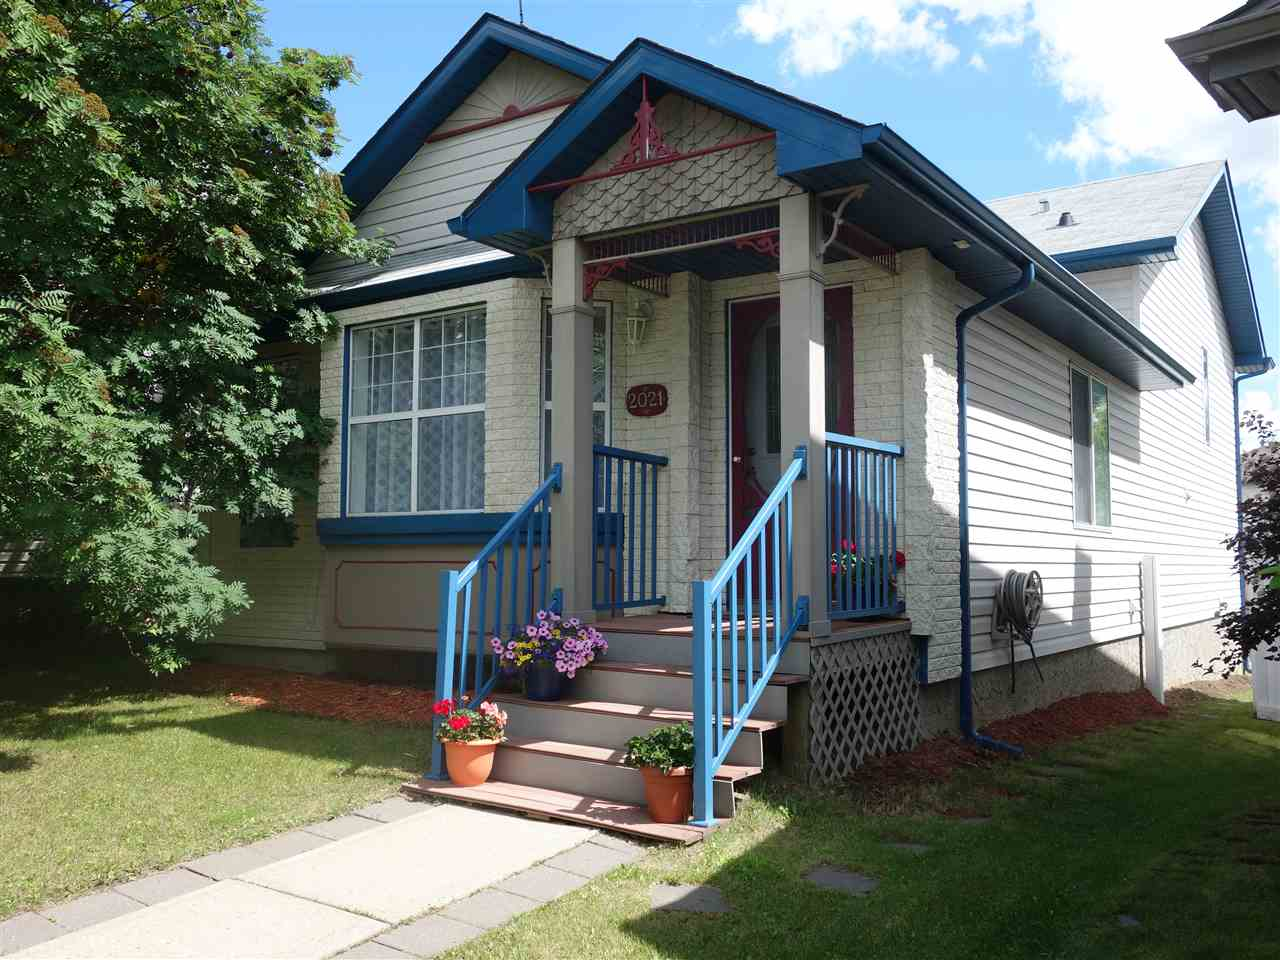 MLS® listing #E4163733 for sale located at 2021 Tanner Wd